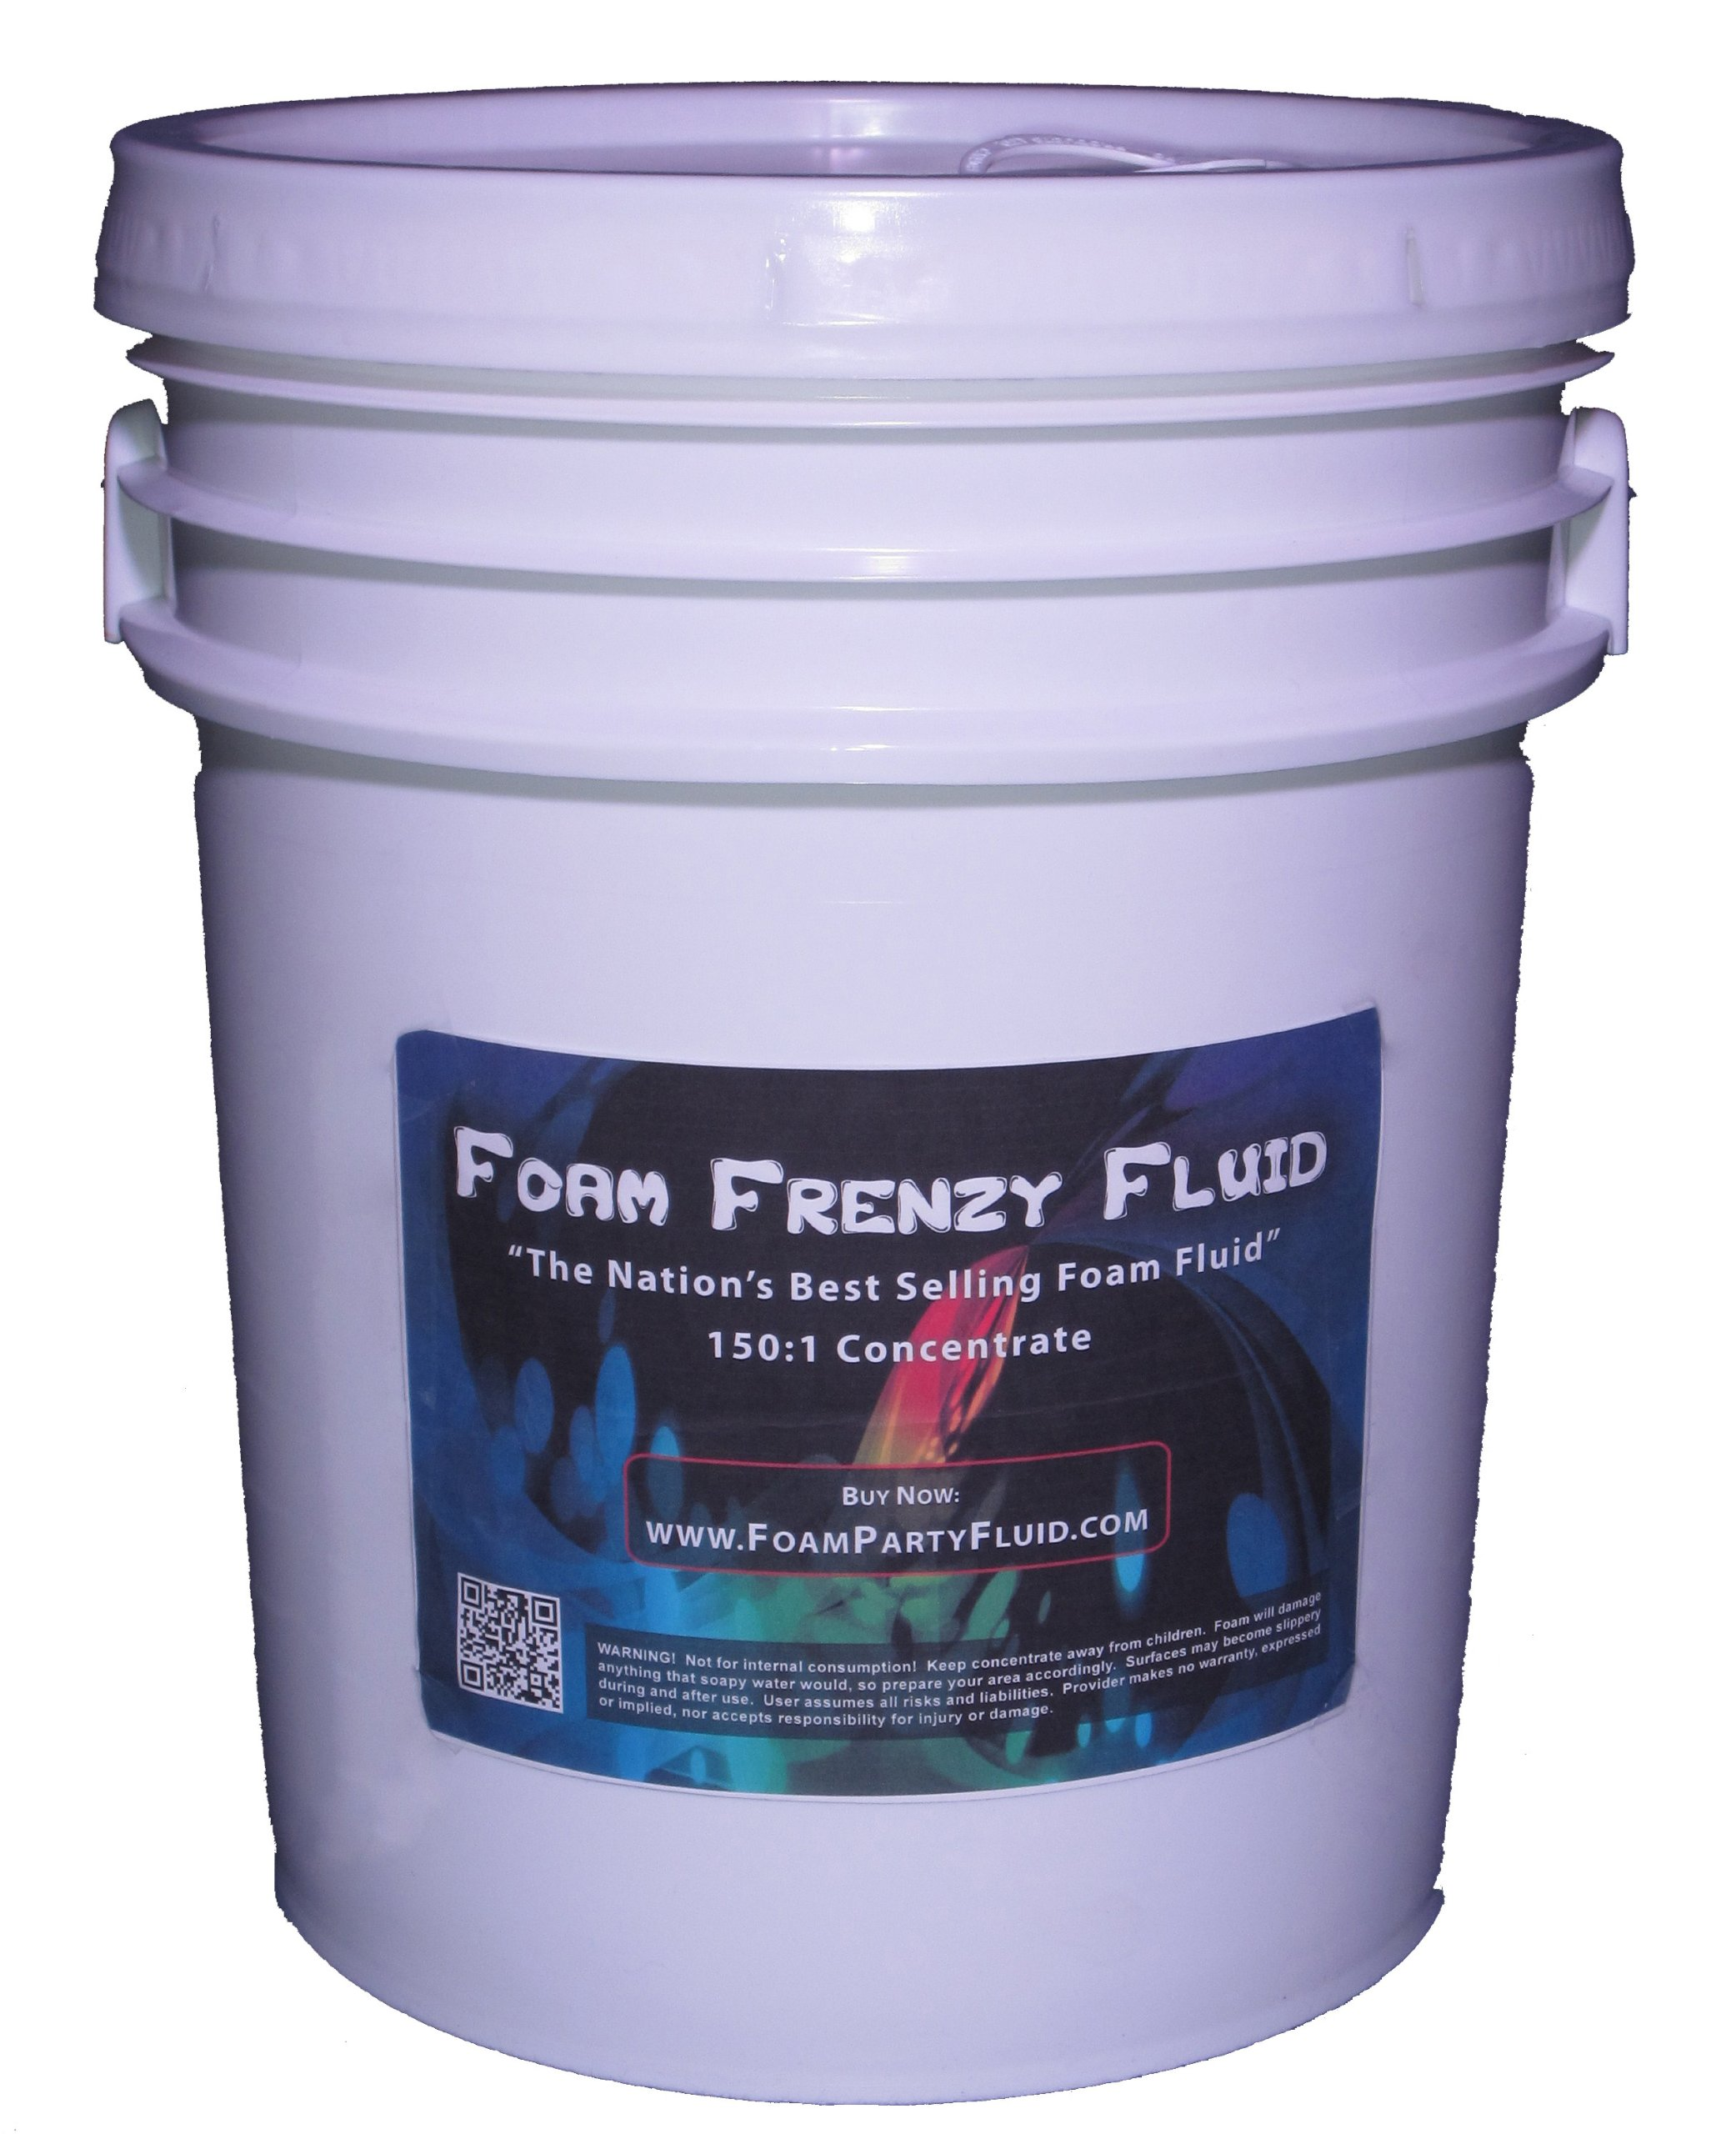 5 Gallons of Foam Frenzy Fluid (Foam Party) 150:1 Concentrate